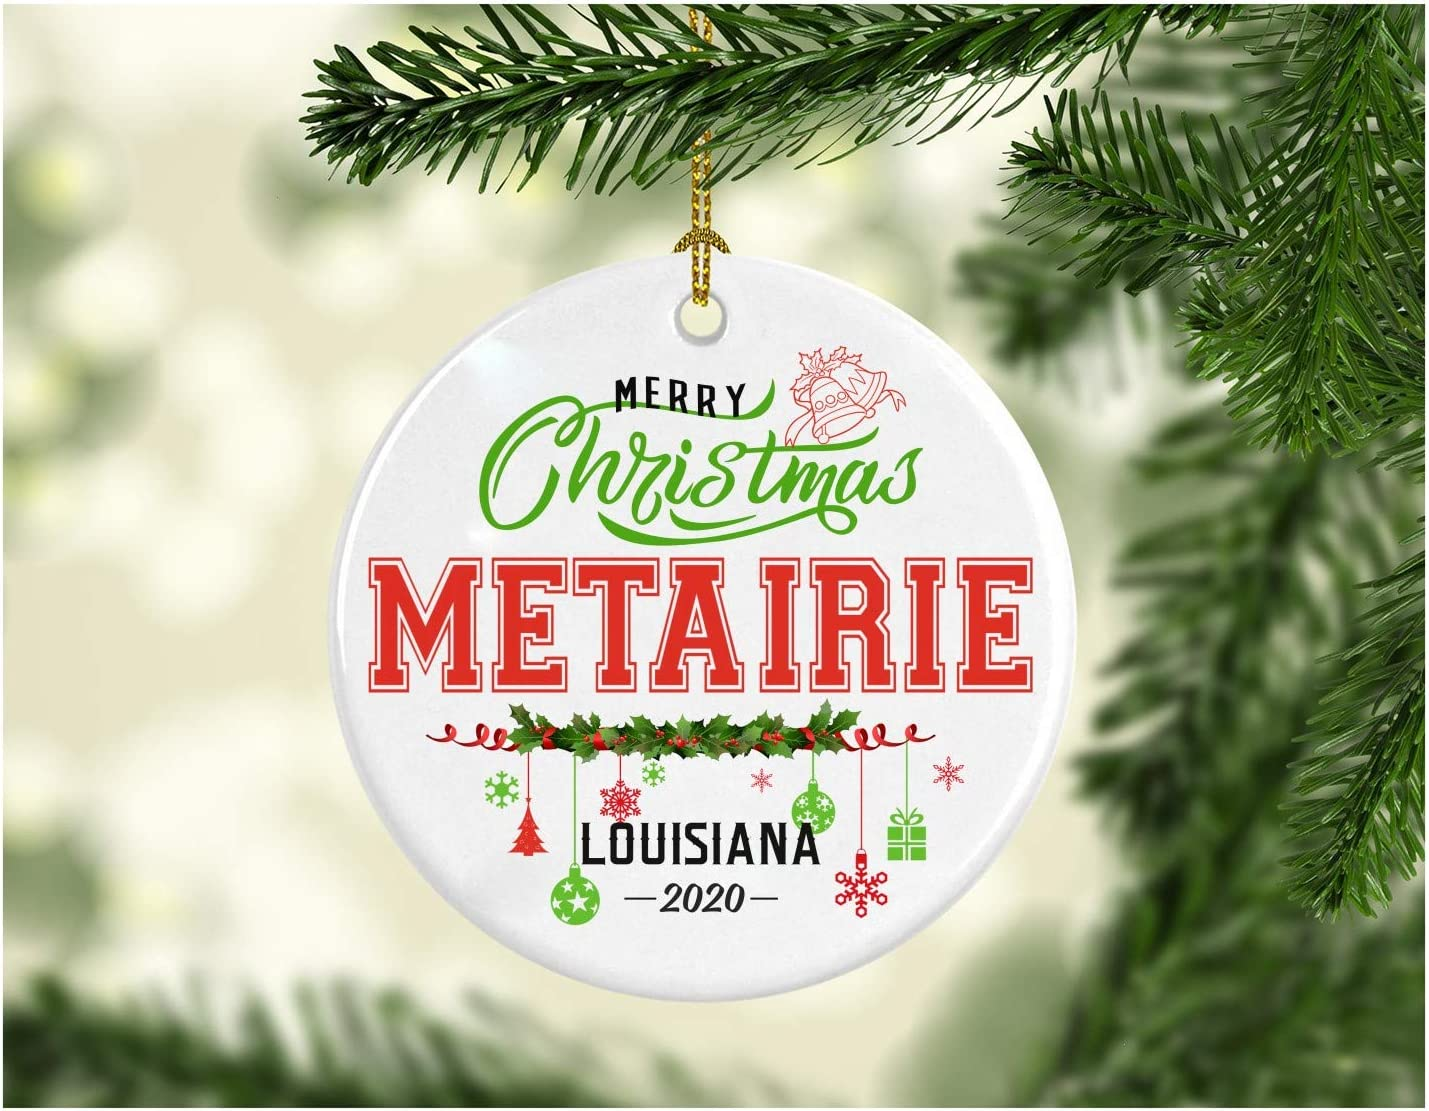 Christmas Decorations Tree Ornament - Gifts Hometown State - Merry Christmas Metairie Louisiana 2020 - Gift for Family Rustic 1St Xmas Tree in Our New Home 3 Inches White